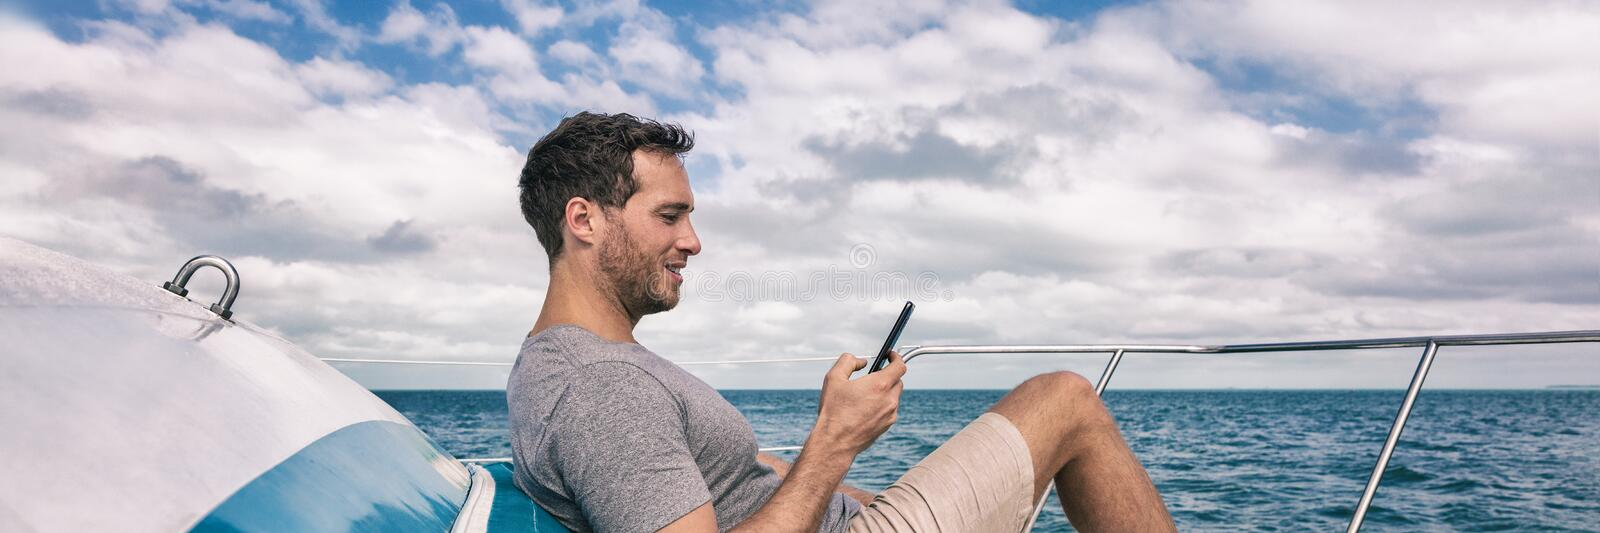 Yacht luxury lifestyle young man using cellphone banner panorama. Person relaxing on deck texting sms message on mobile phone royalty free stock images